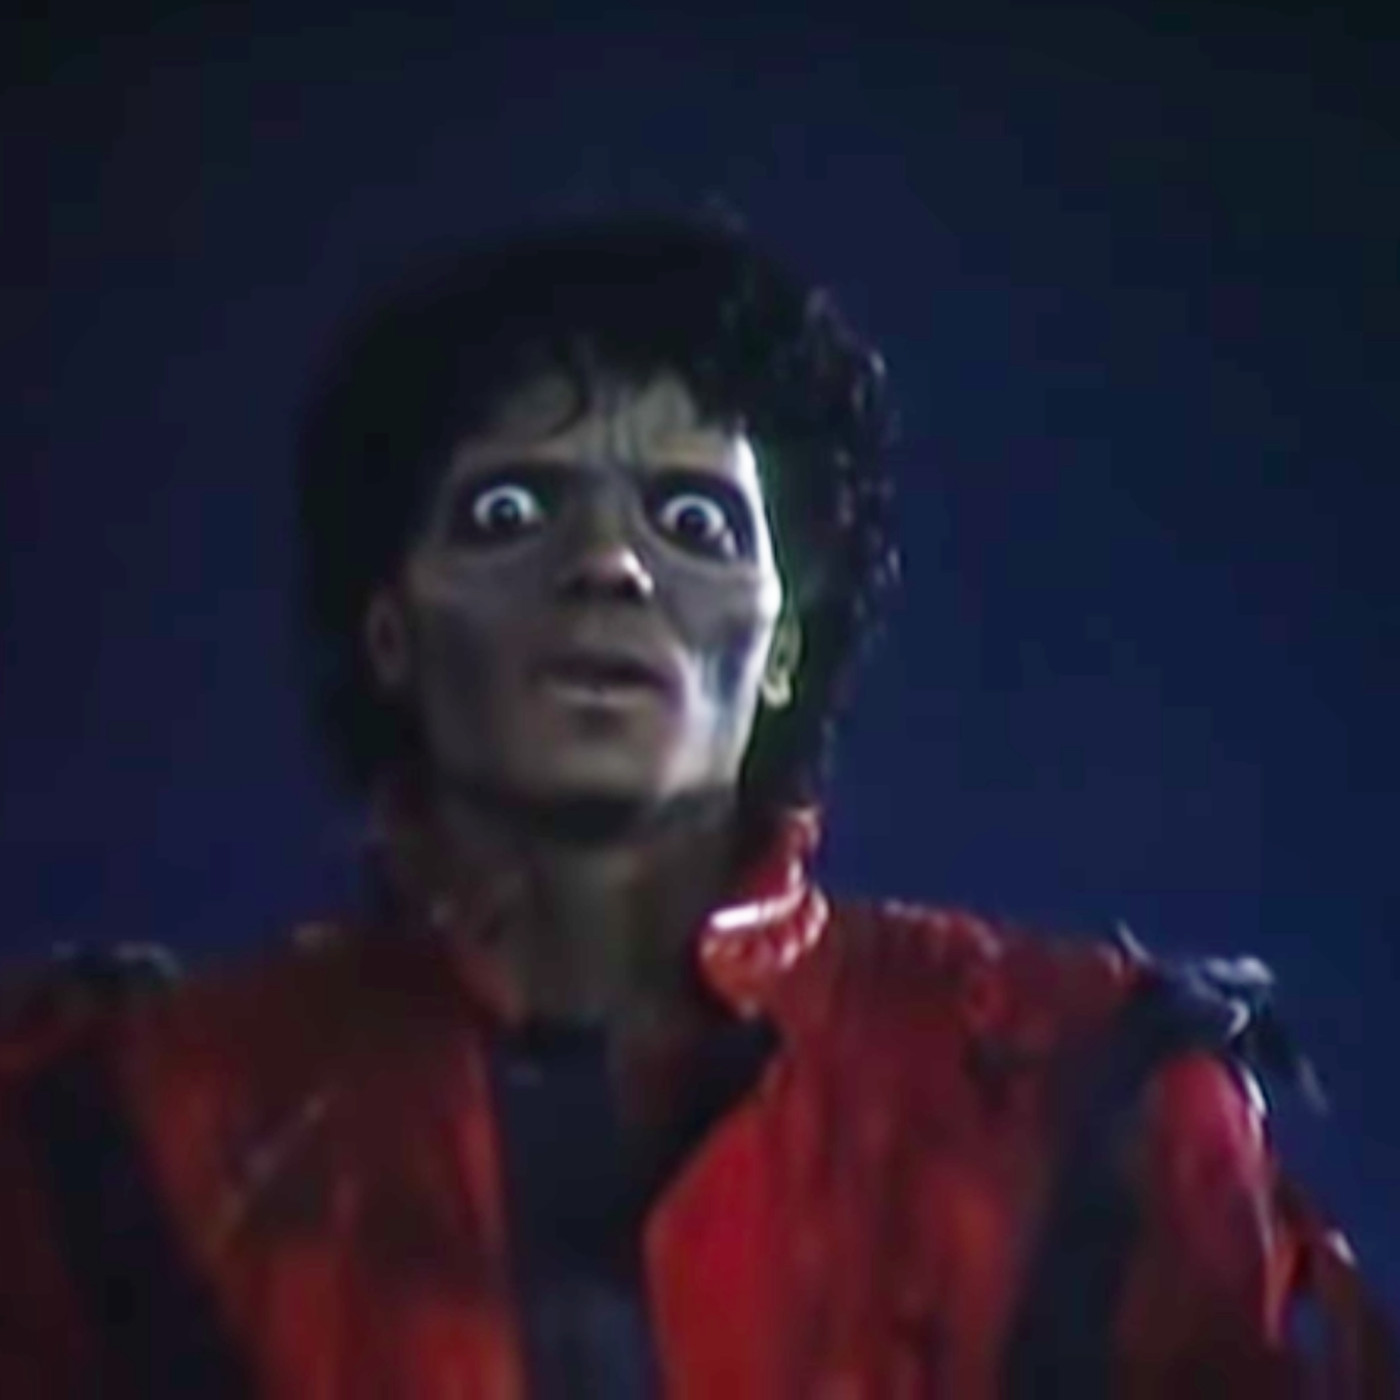 Michael Jackson S Thriller Fun Facts About The Halloween Anthem Vox